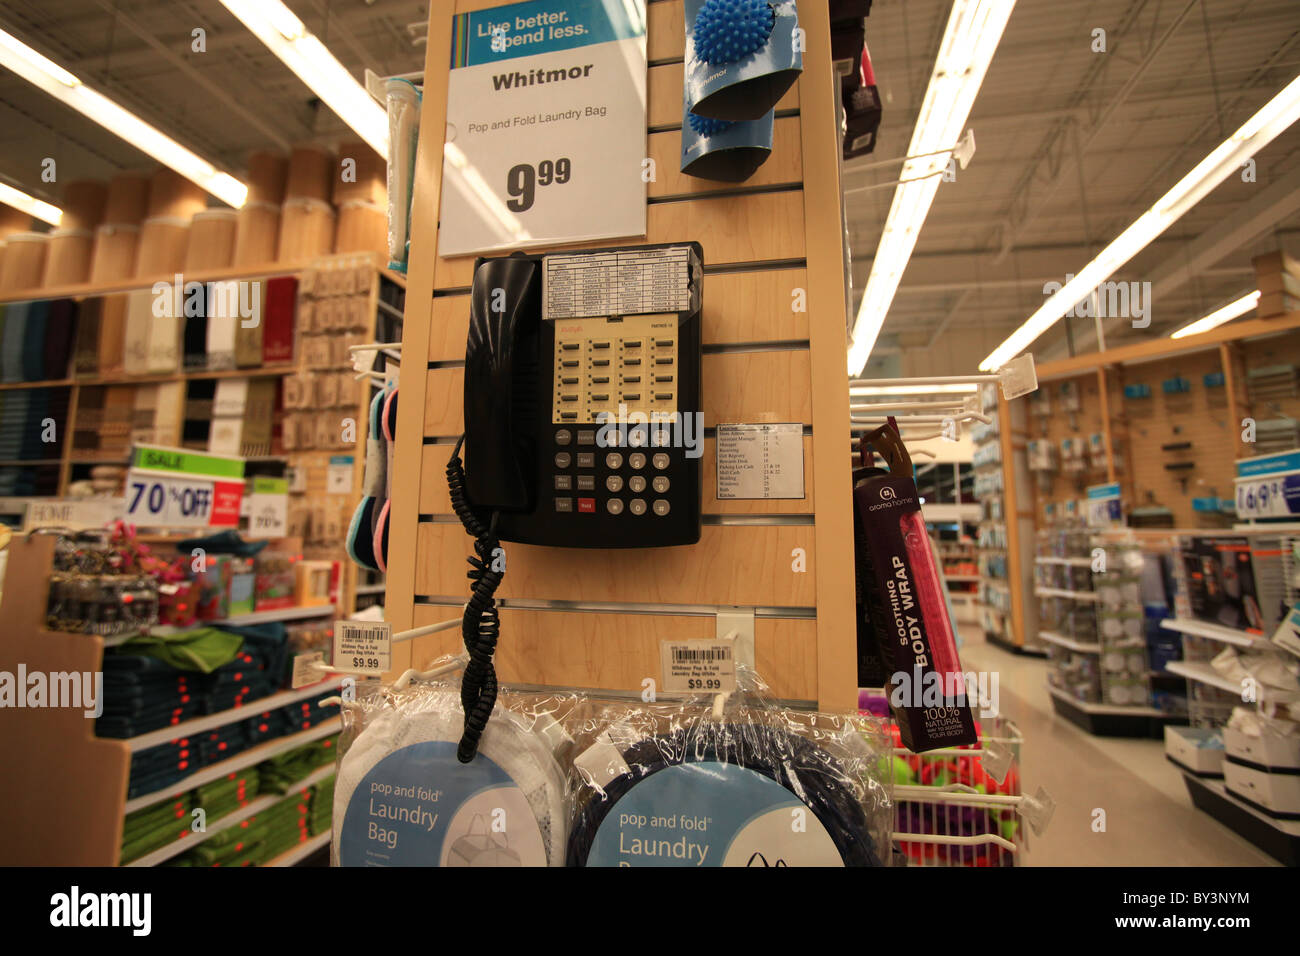 Phone for internal calls in Home outfitters outlet store in Vaughan Mills Mall in Toronto, Canada 2010 - Stock Image